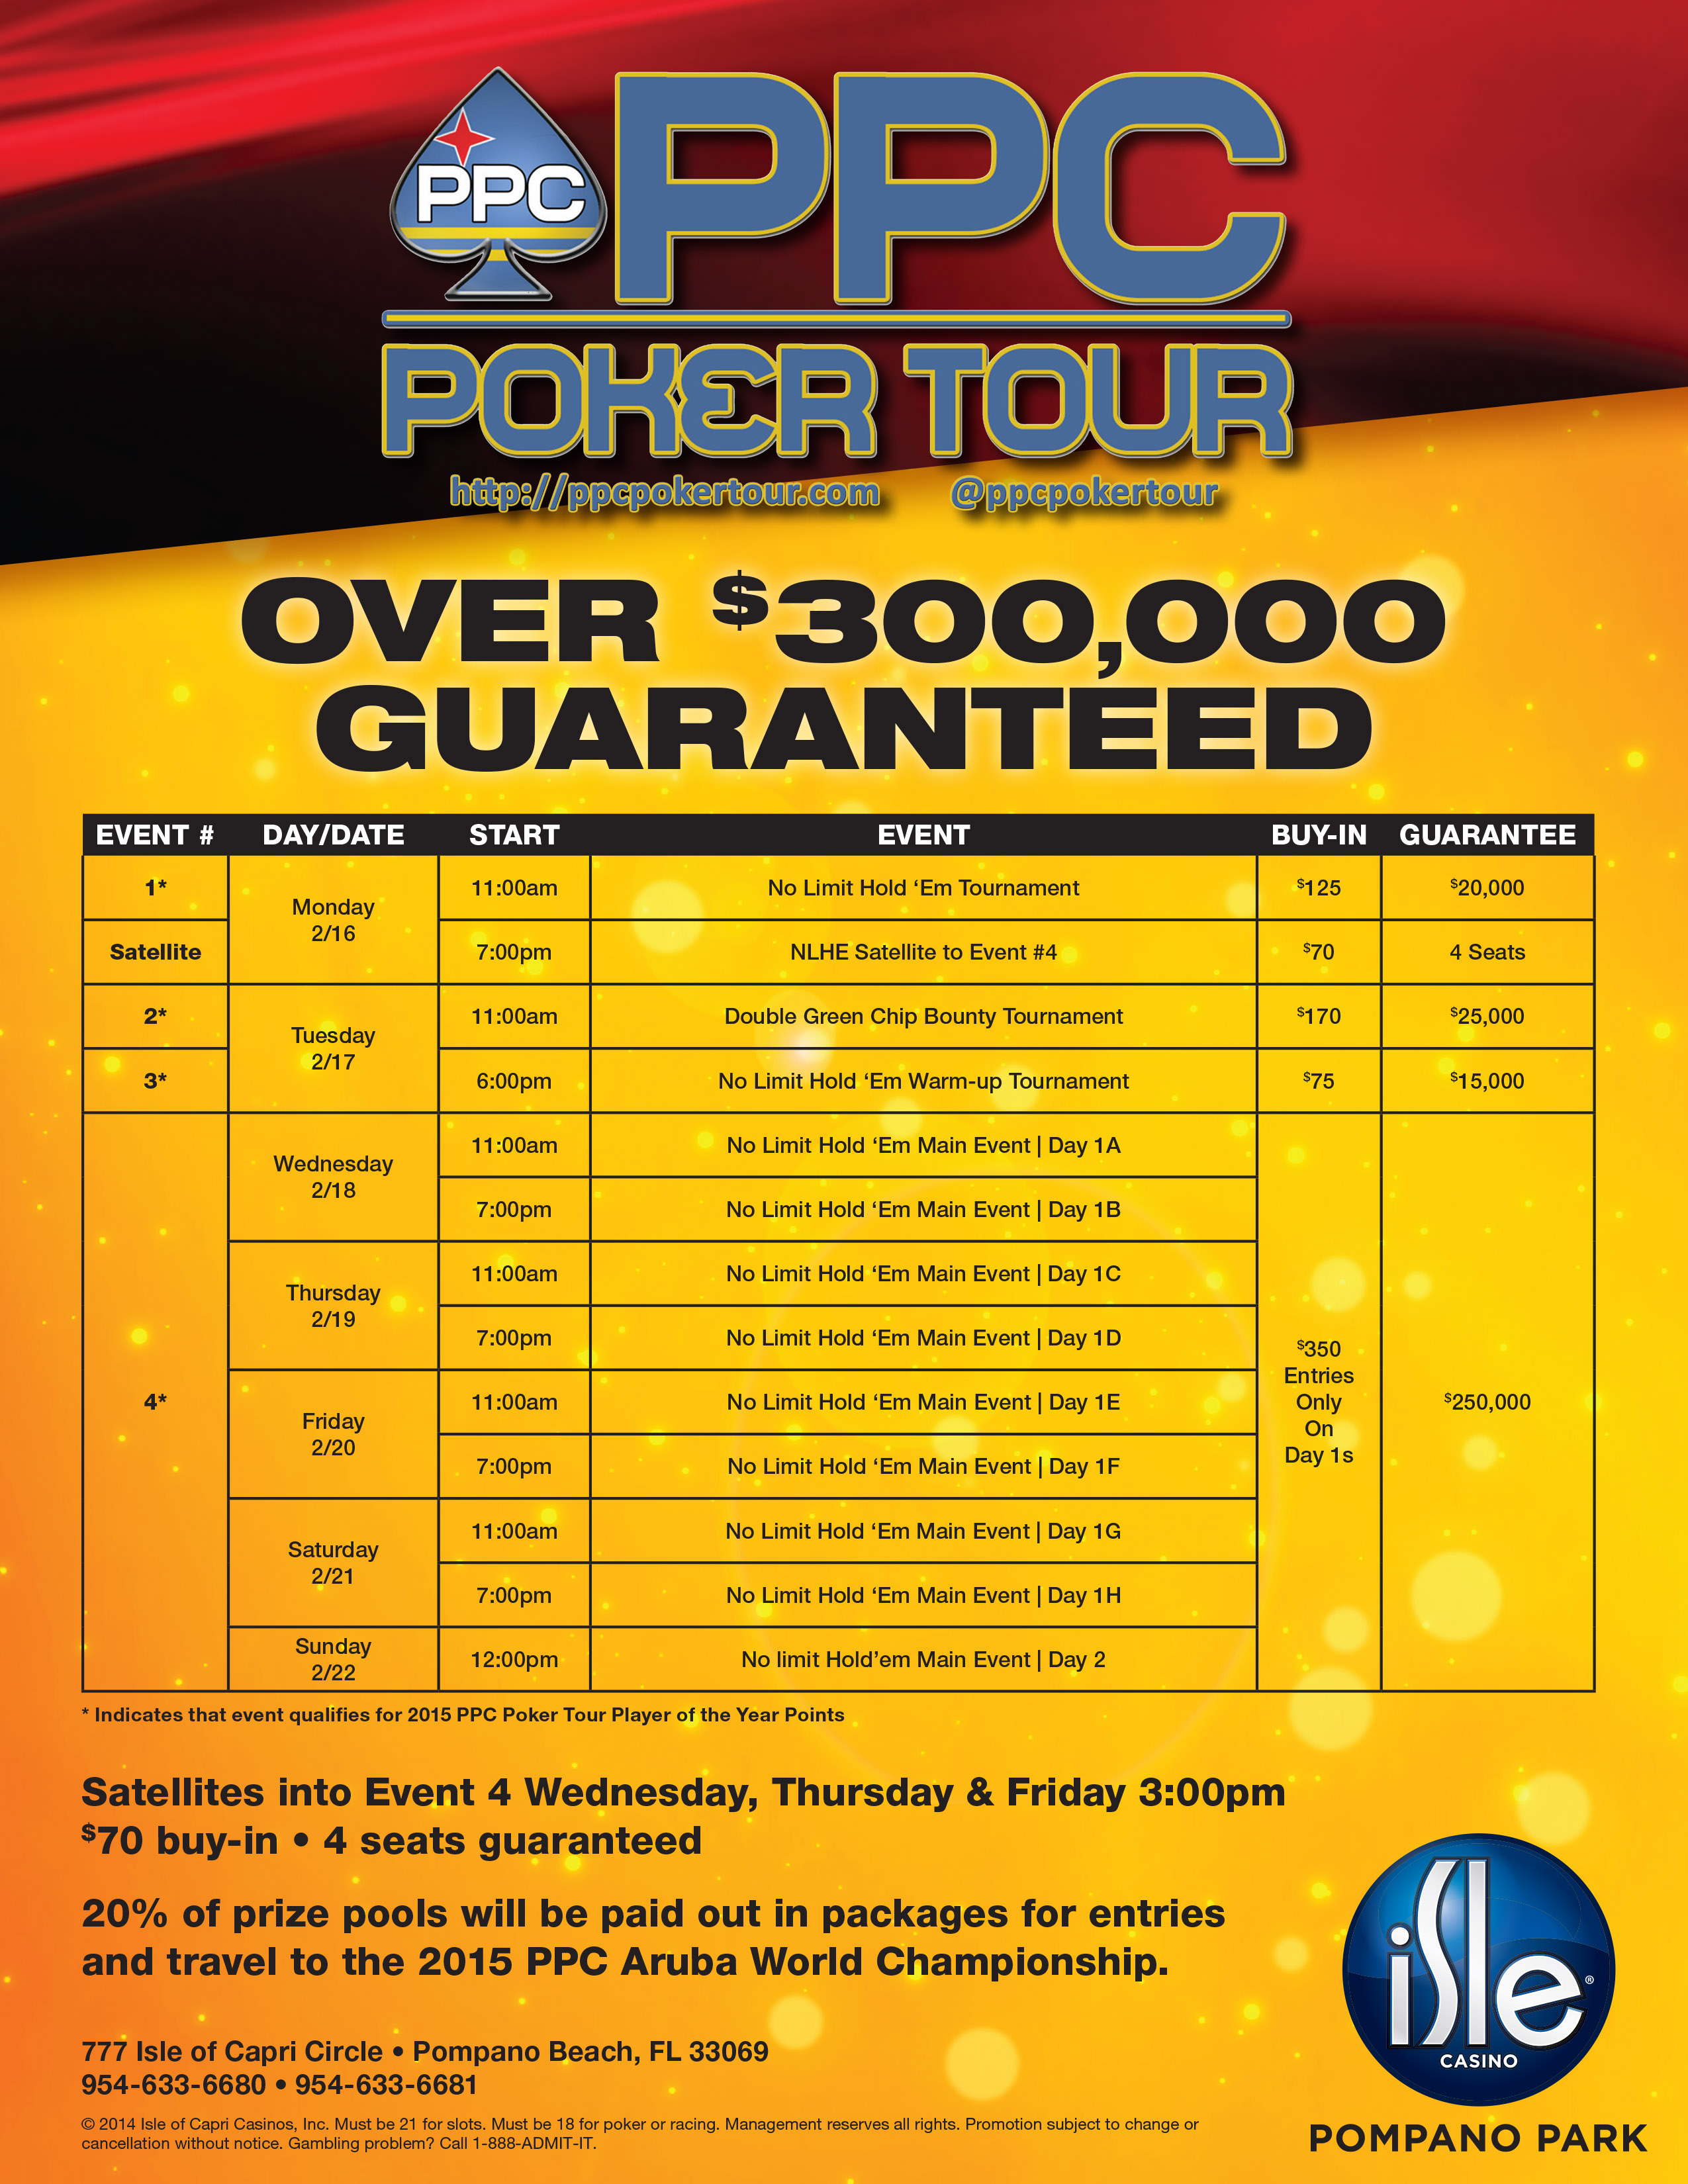 Isles casino poker tournament schedule no deposit electricity